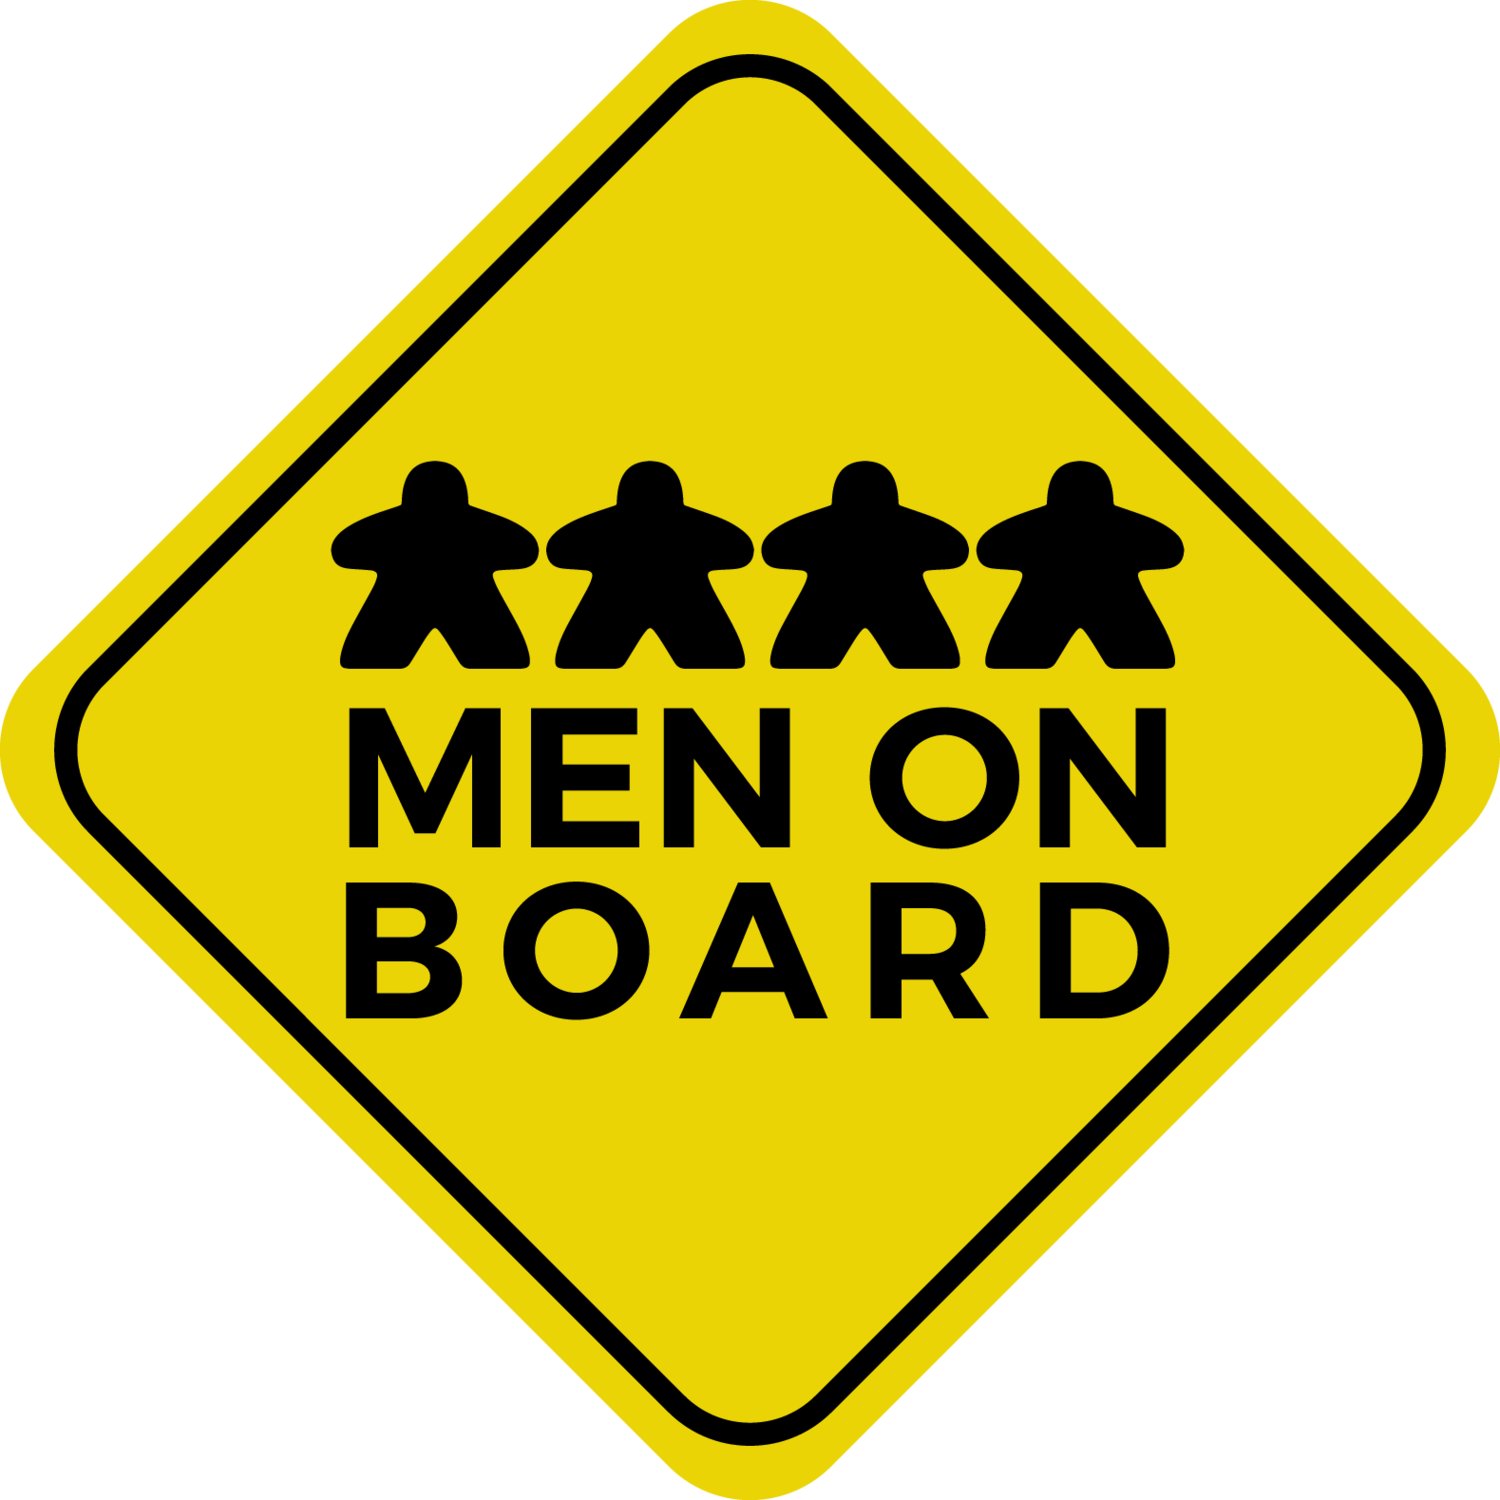 Men on Board